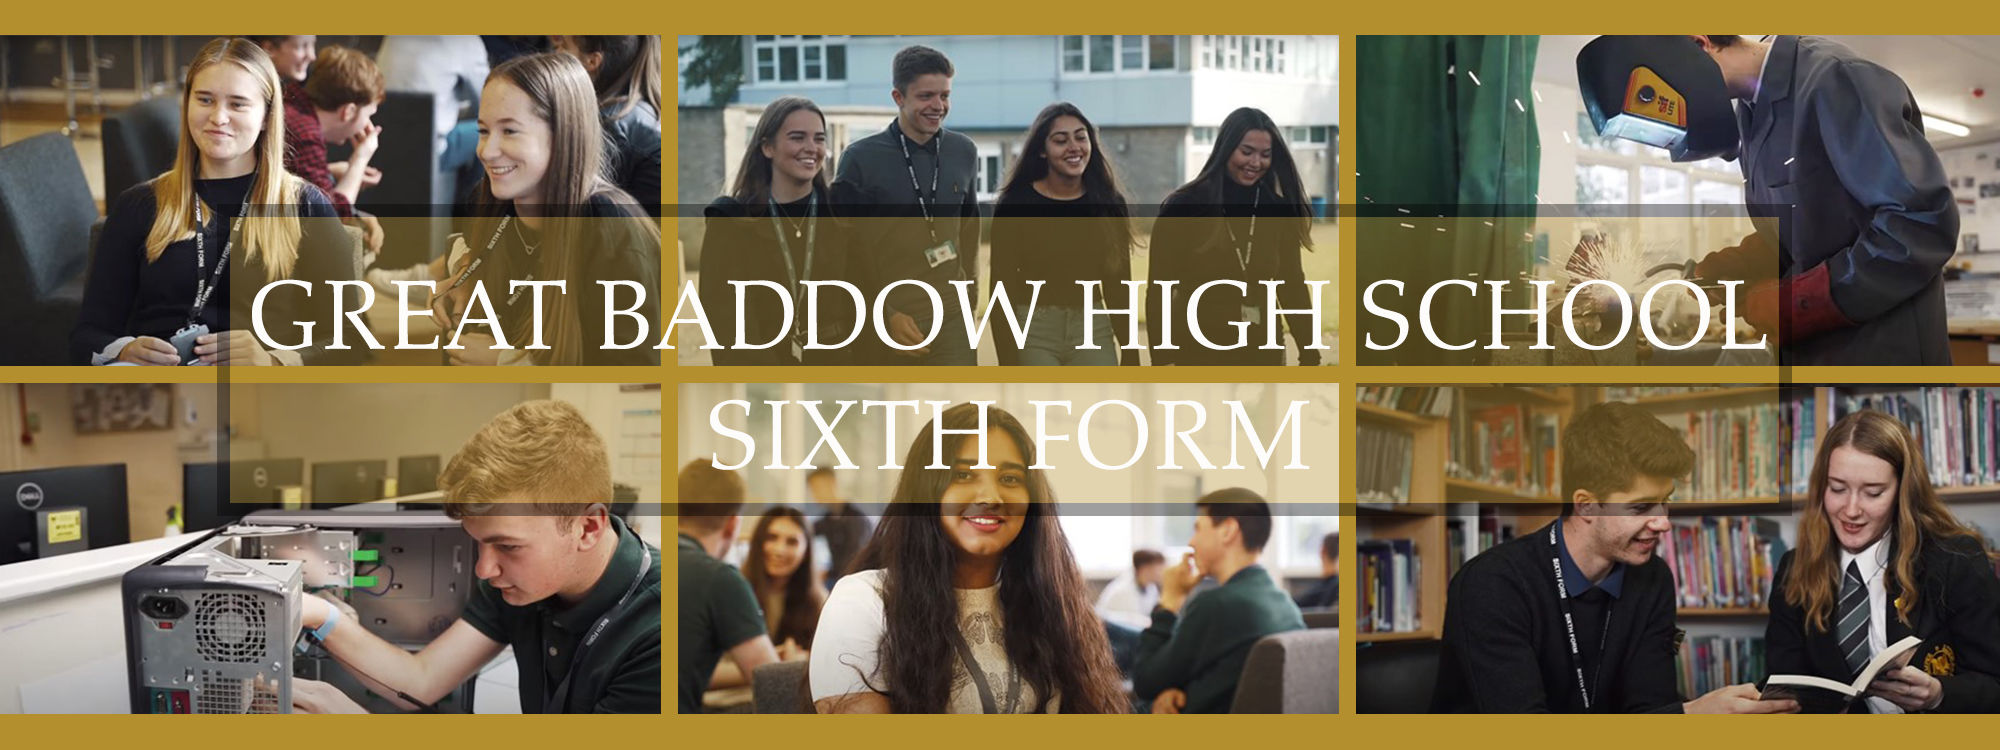 Sixth Form Banner 2 Image 10.11.20